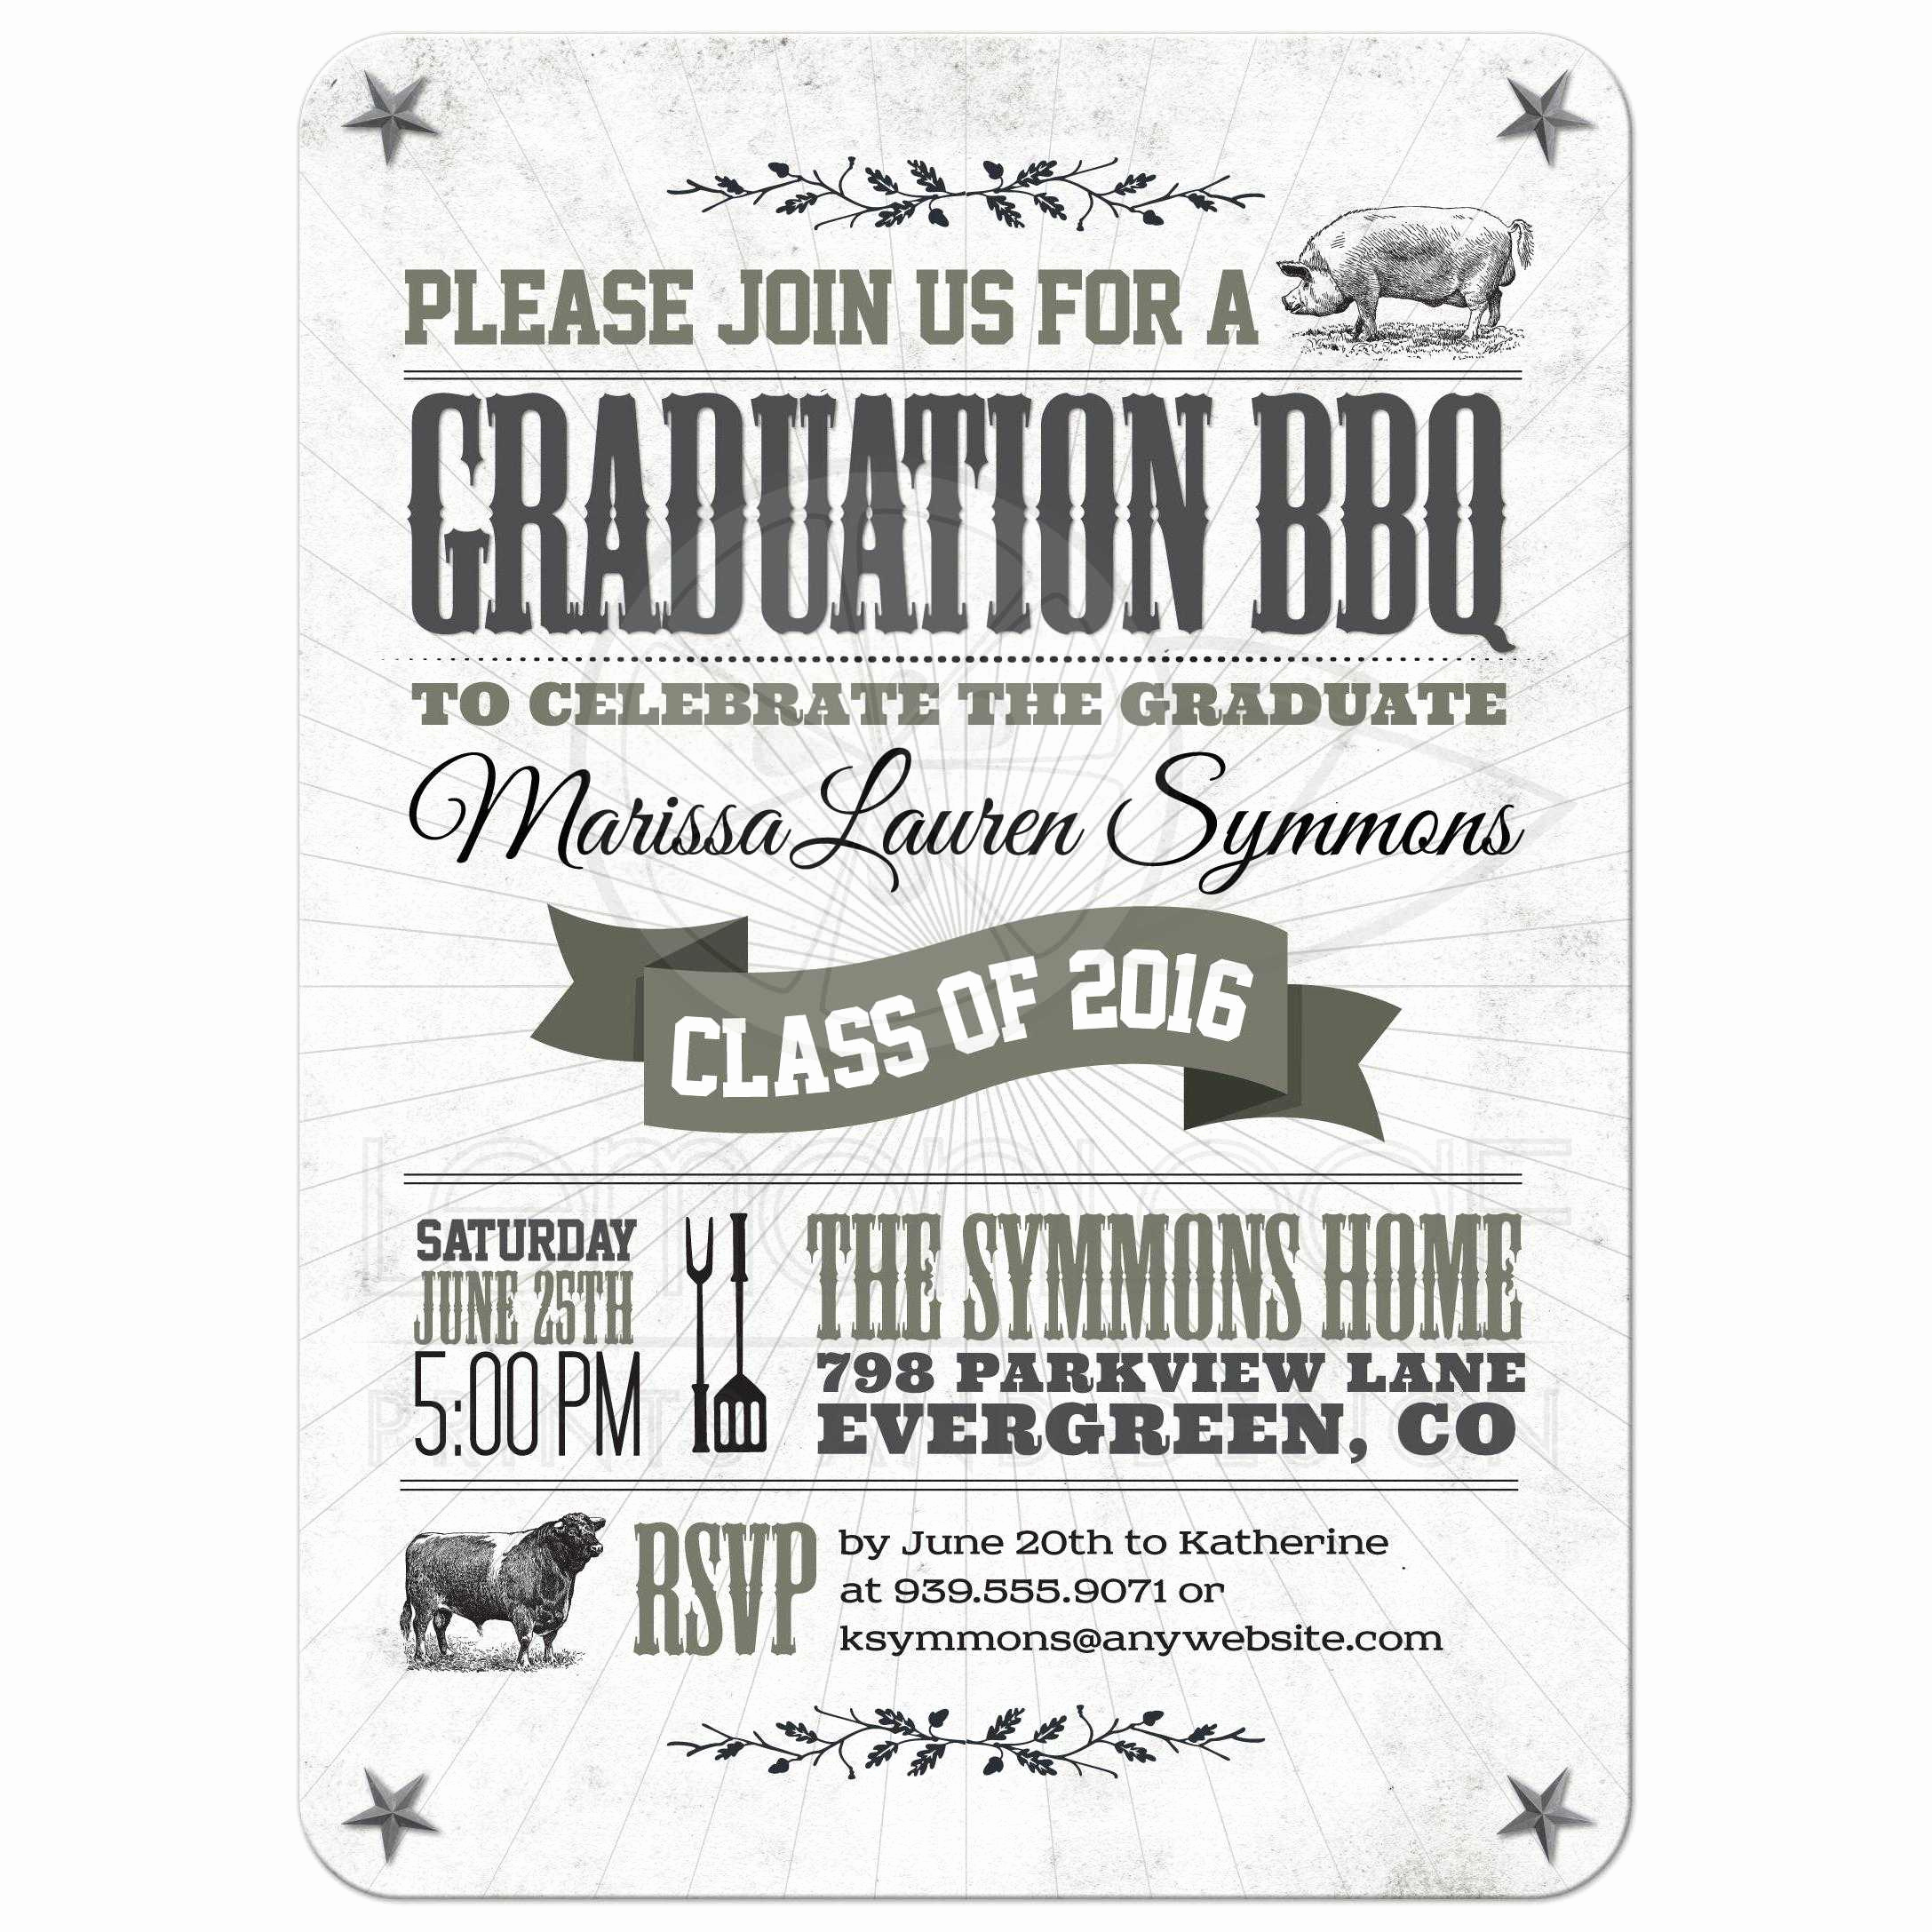 Graduation Bbq Invitation Wording Inspirational Graduation Party Invitation Rustic Bbq Pig and Cow Gray